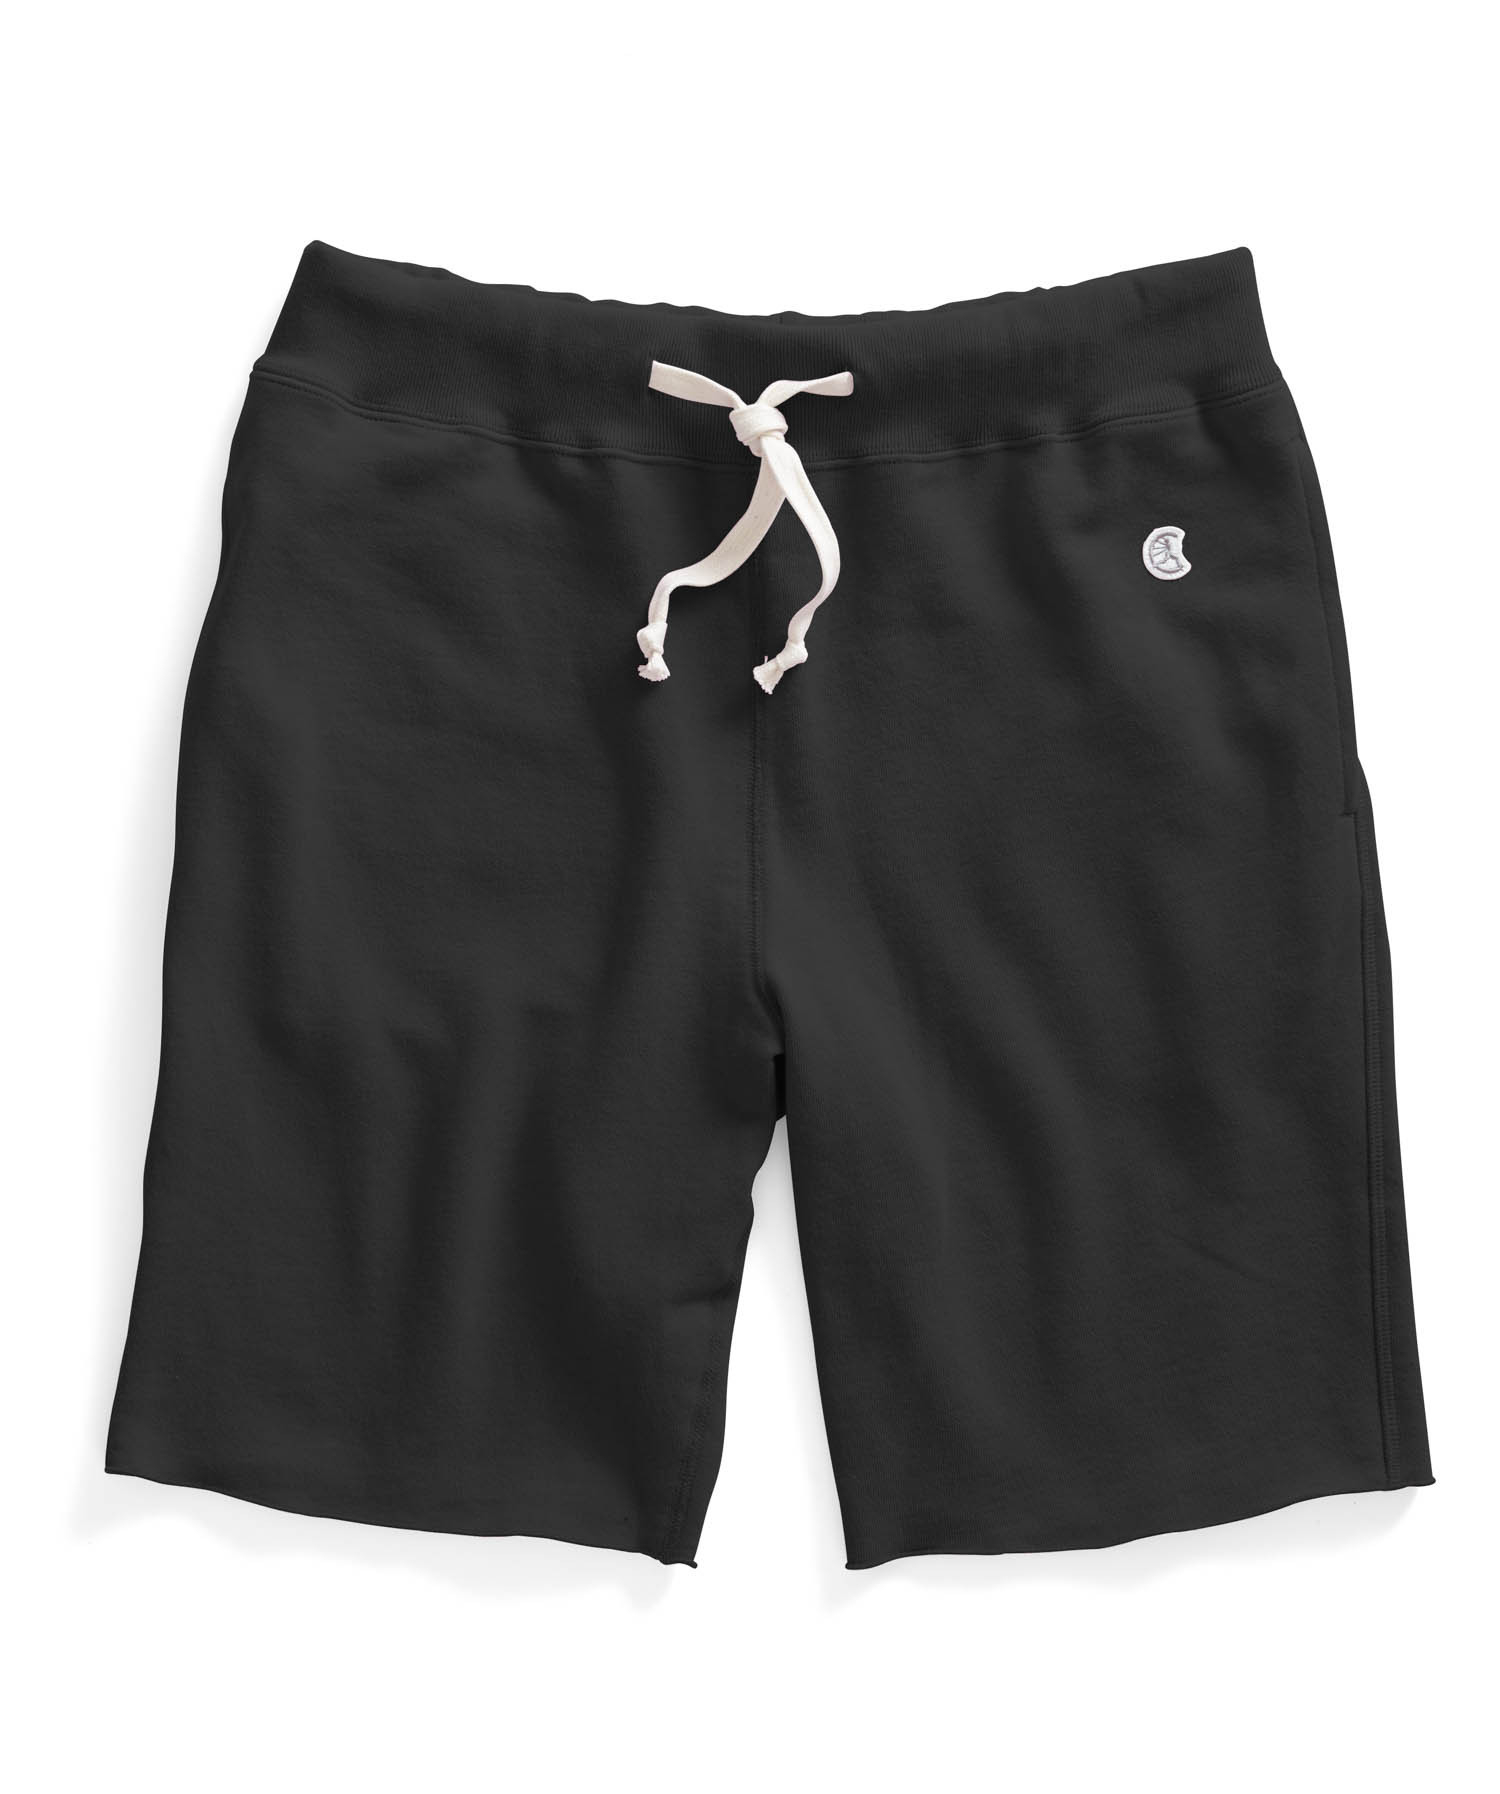 Cut Off Sweat Shorts In Black For